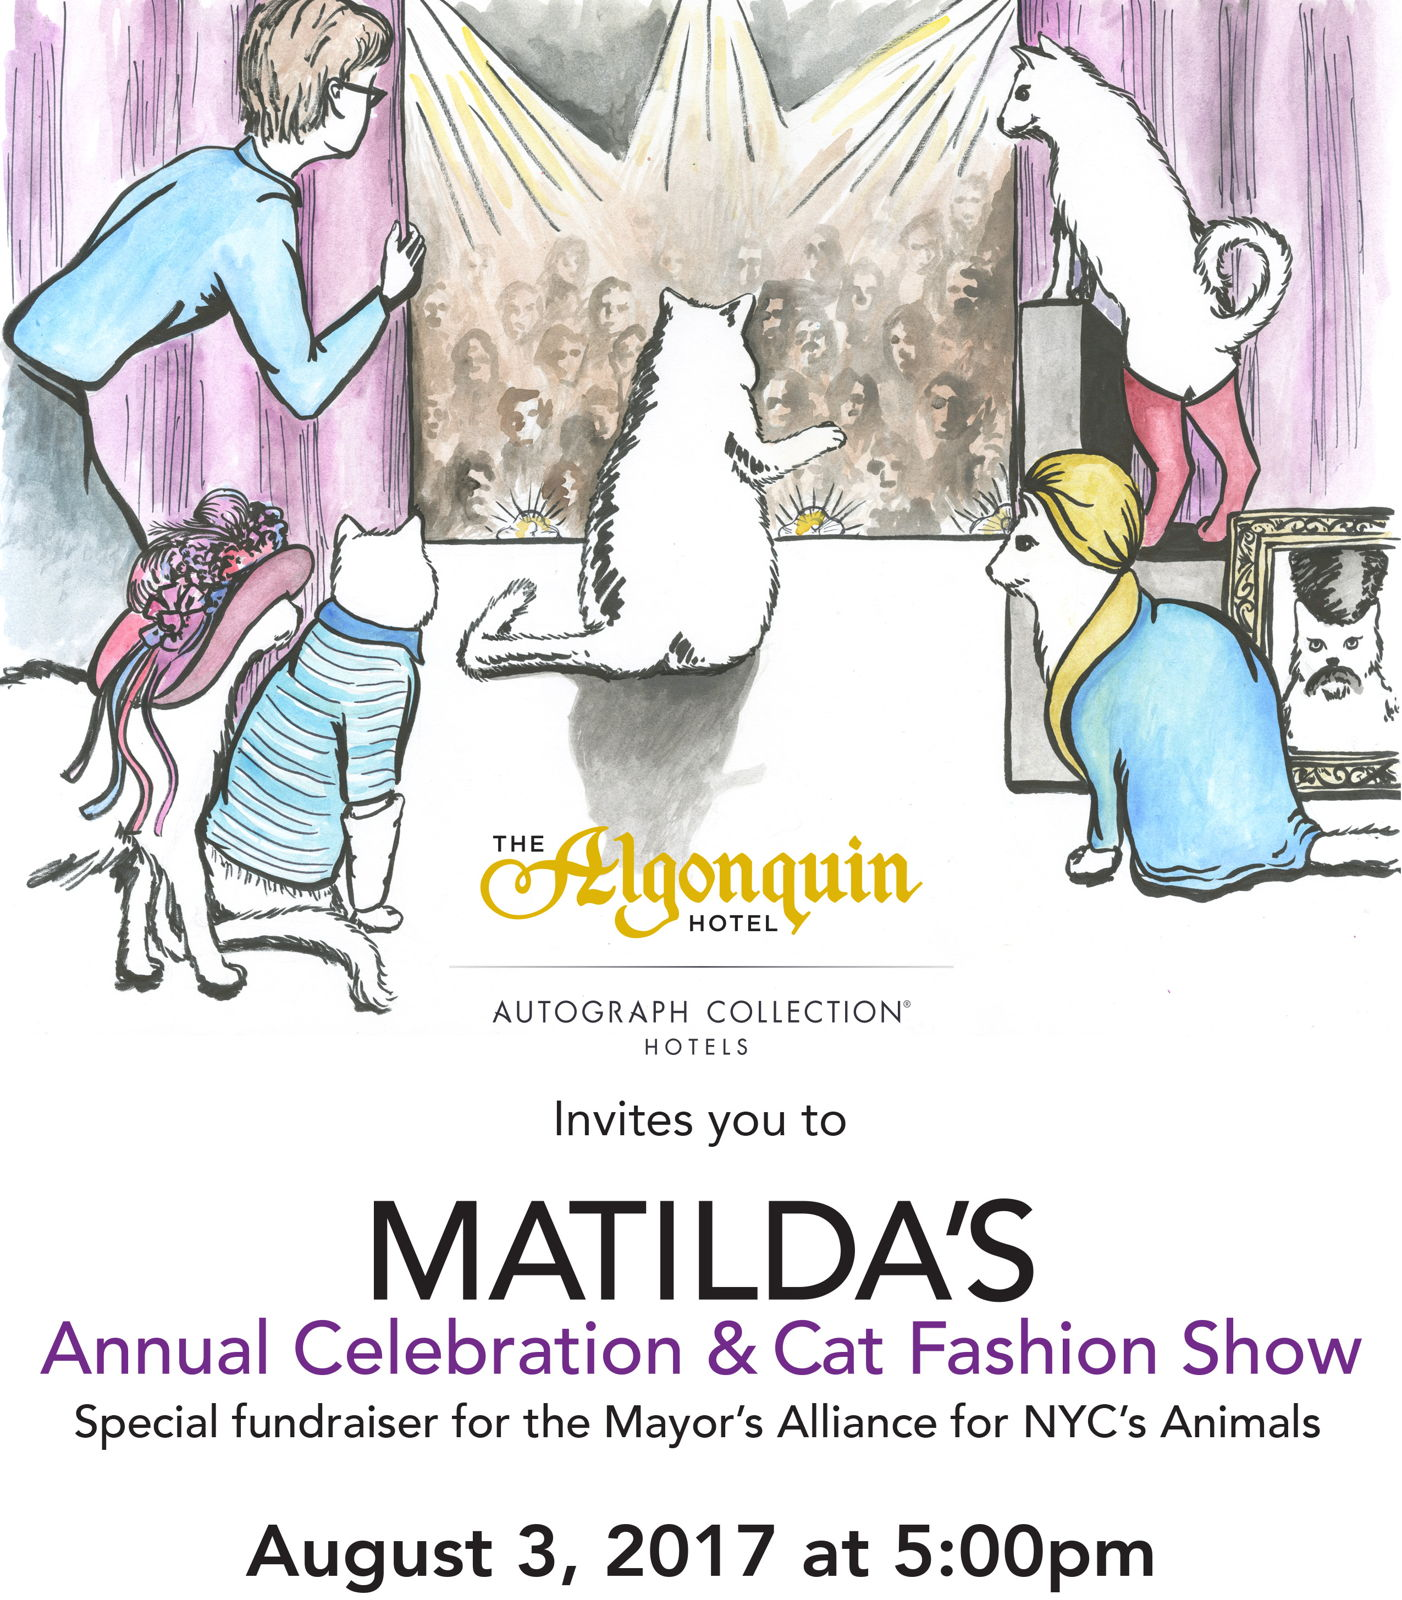 matilda-cat-fashion-show-algonquin-hotel